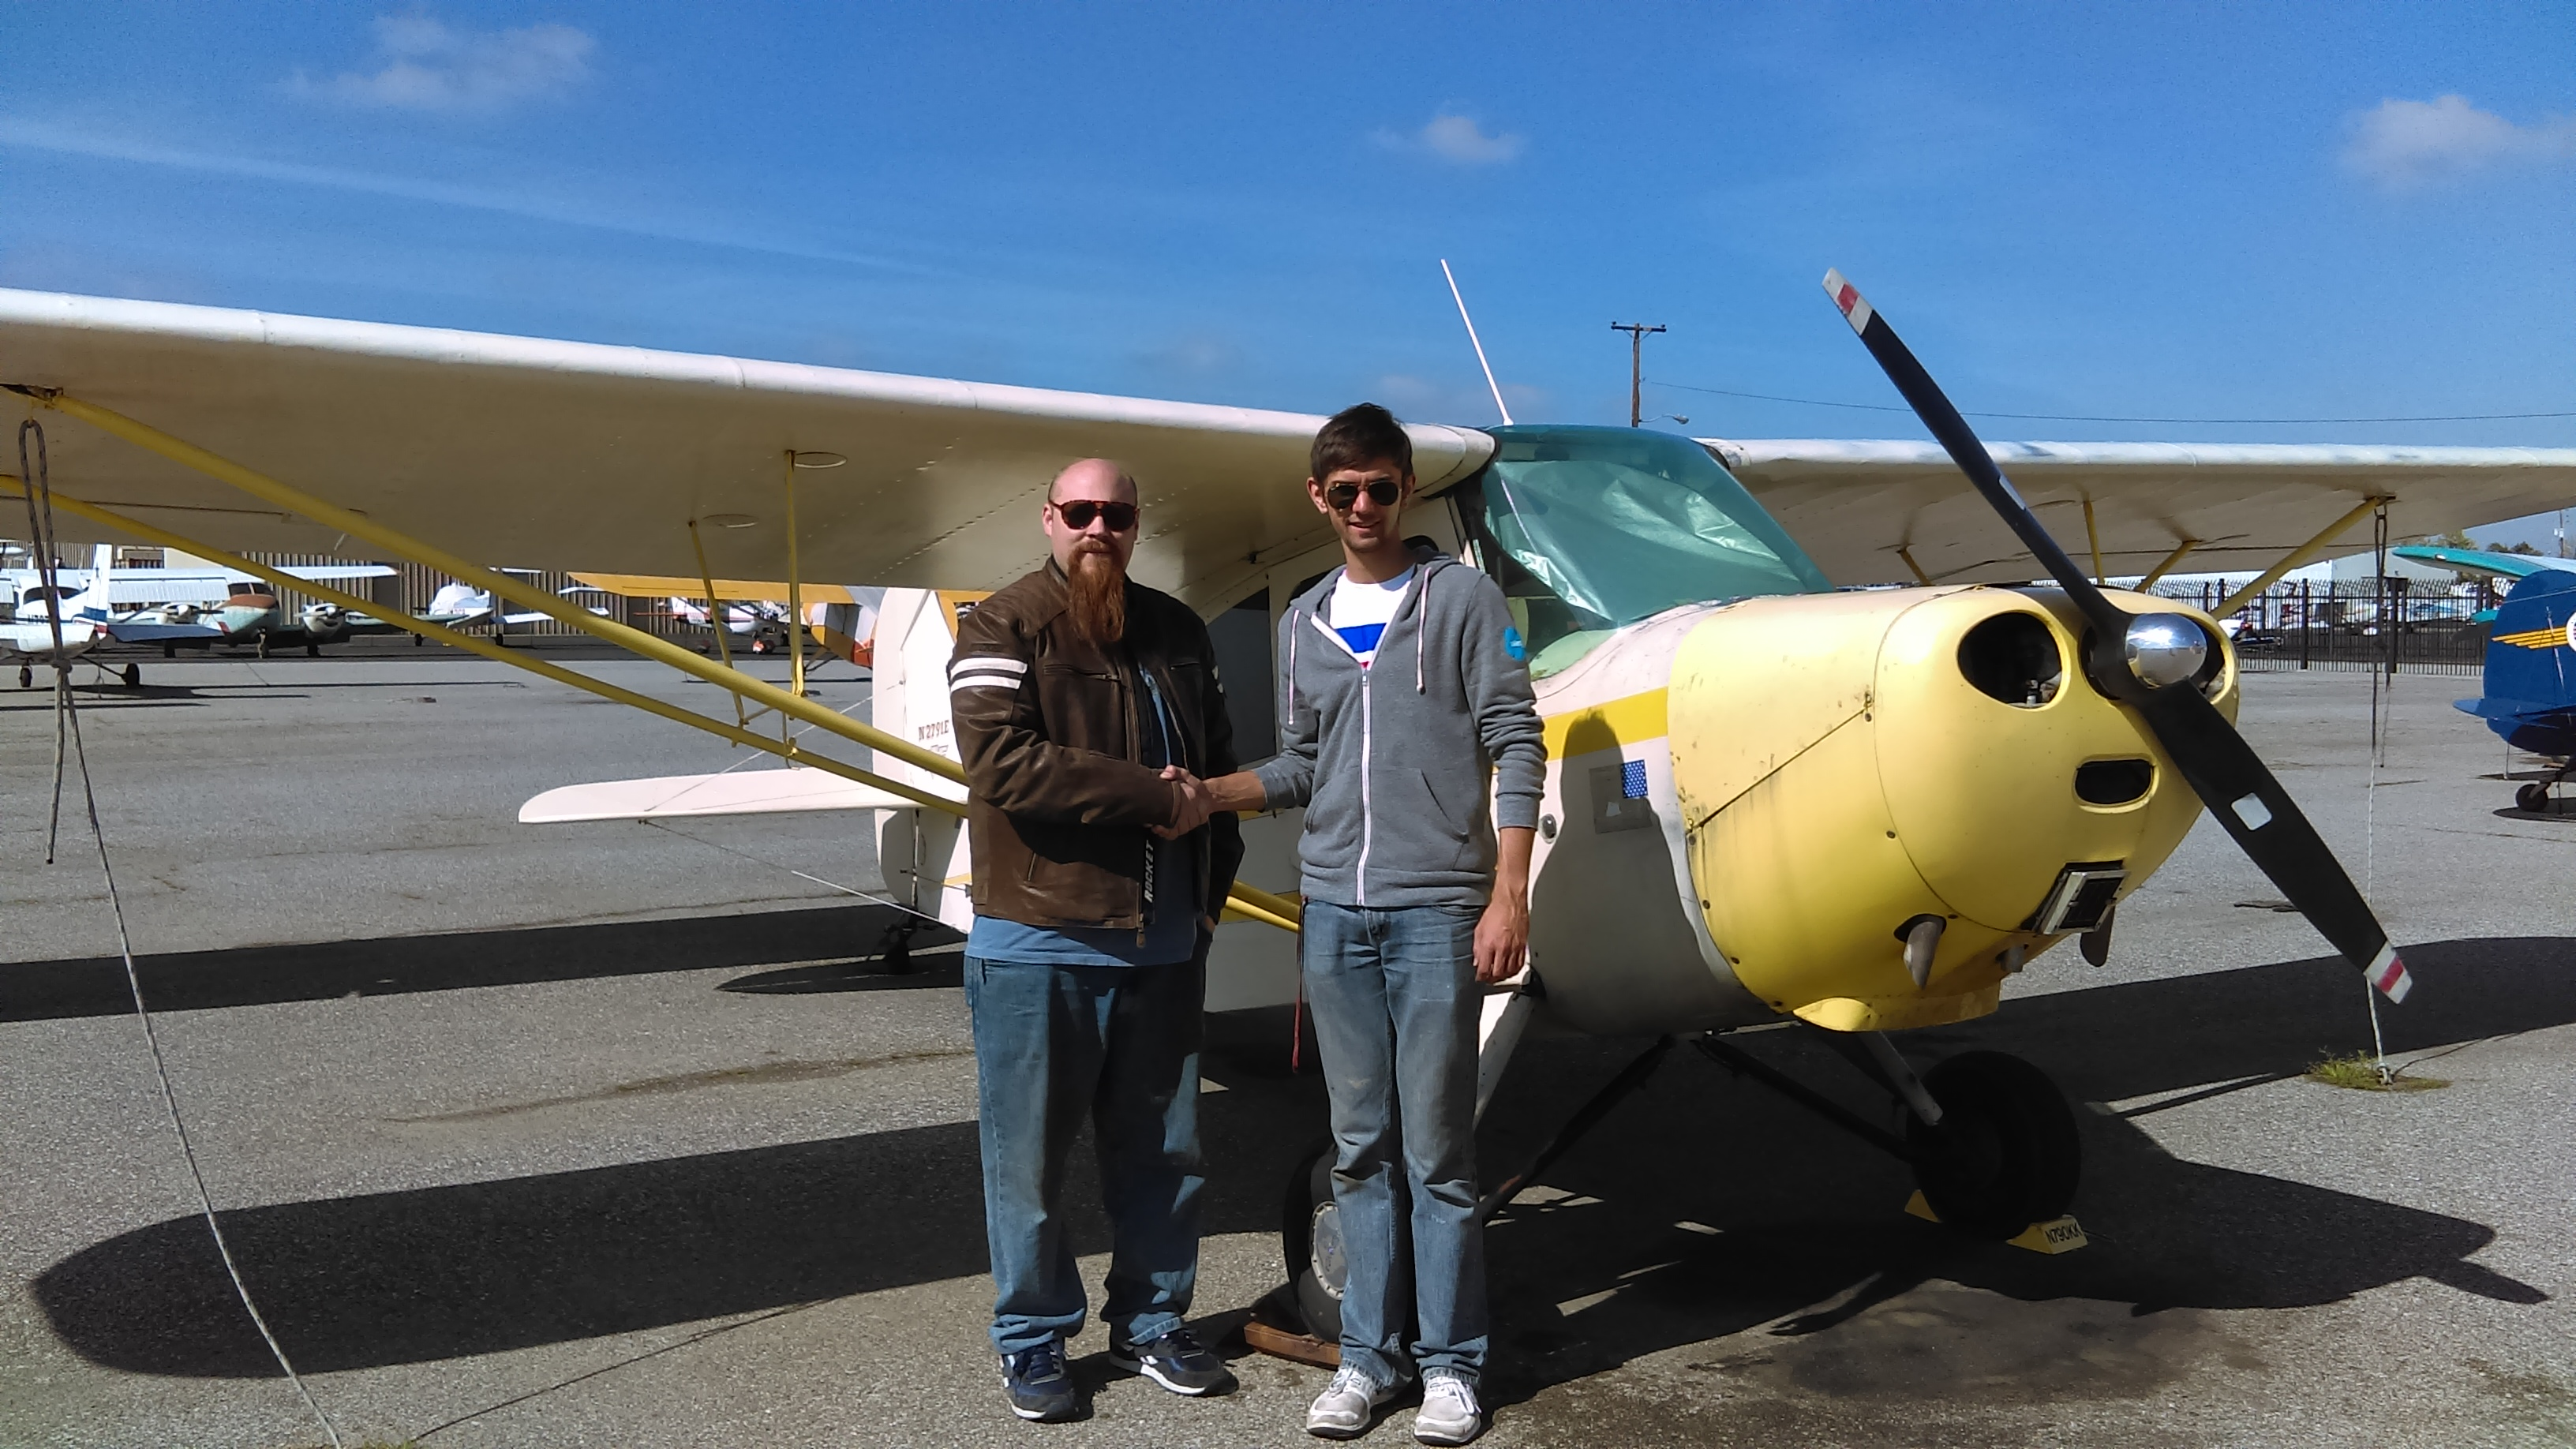 Champ, tailwheel endorsement, tailwheel